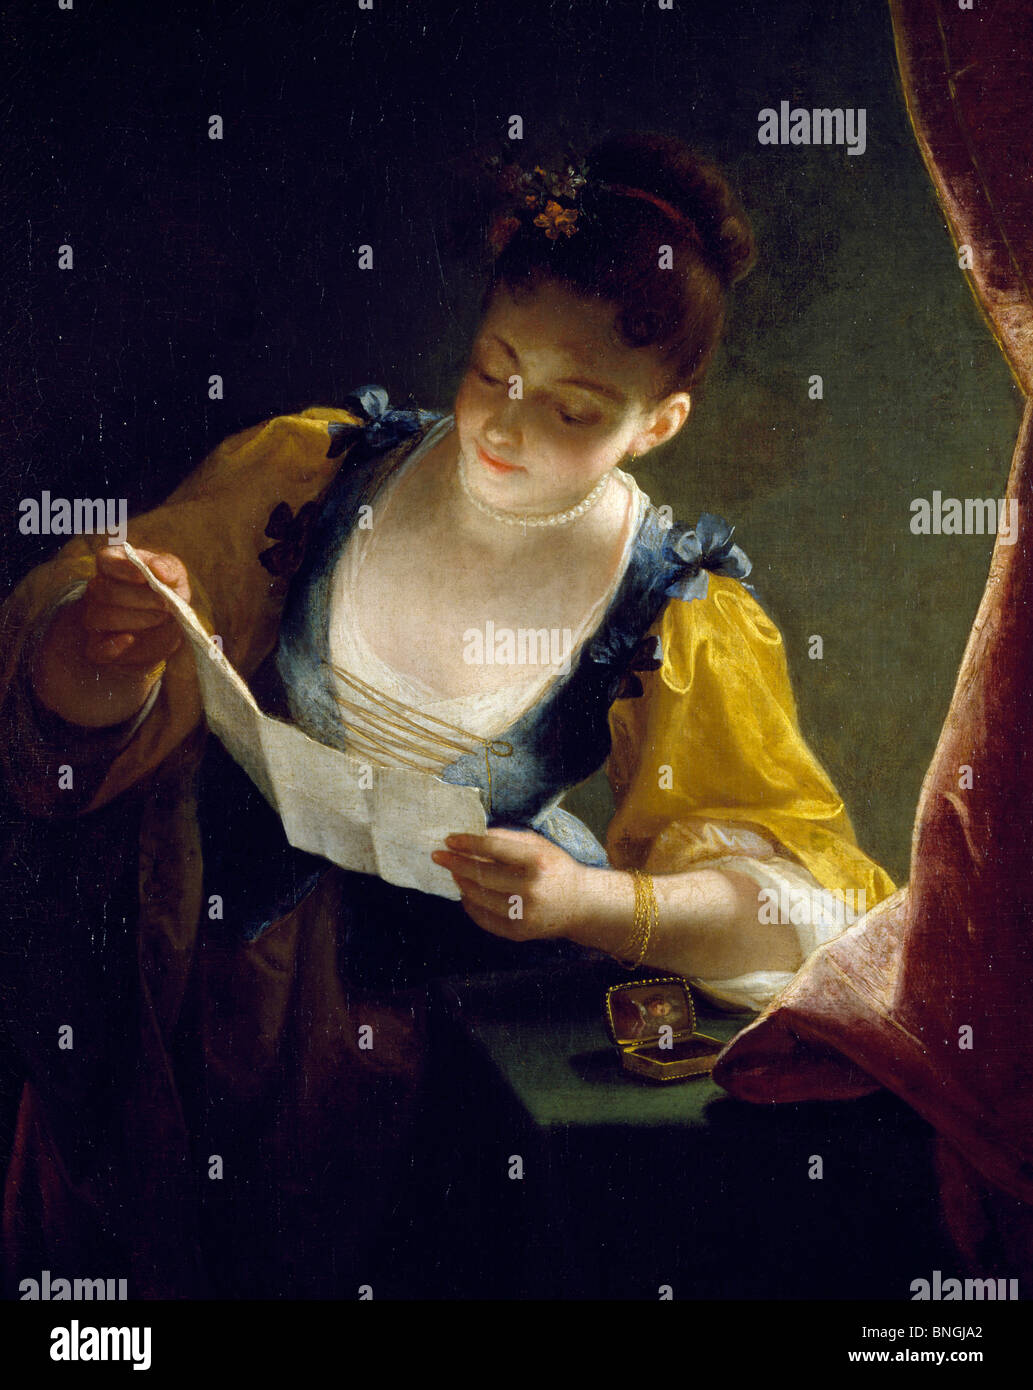 young w reading a letter by jean raoux th century stock young w reading a letter by jean raoux 18th century 1677 1734 paris musee du petit palais